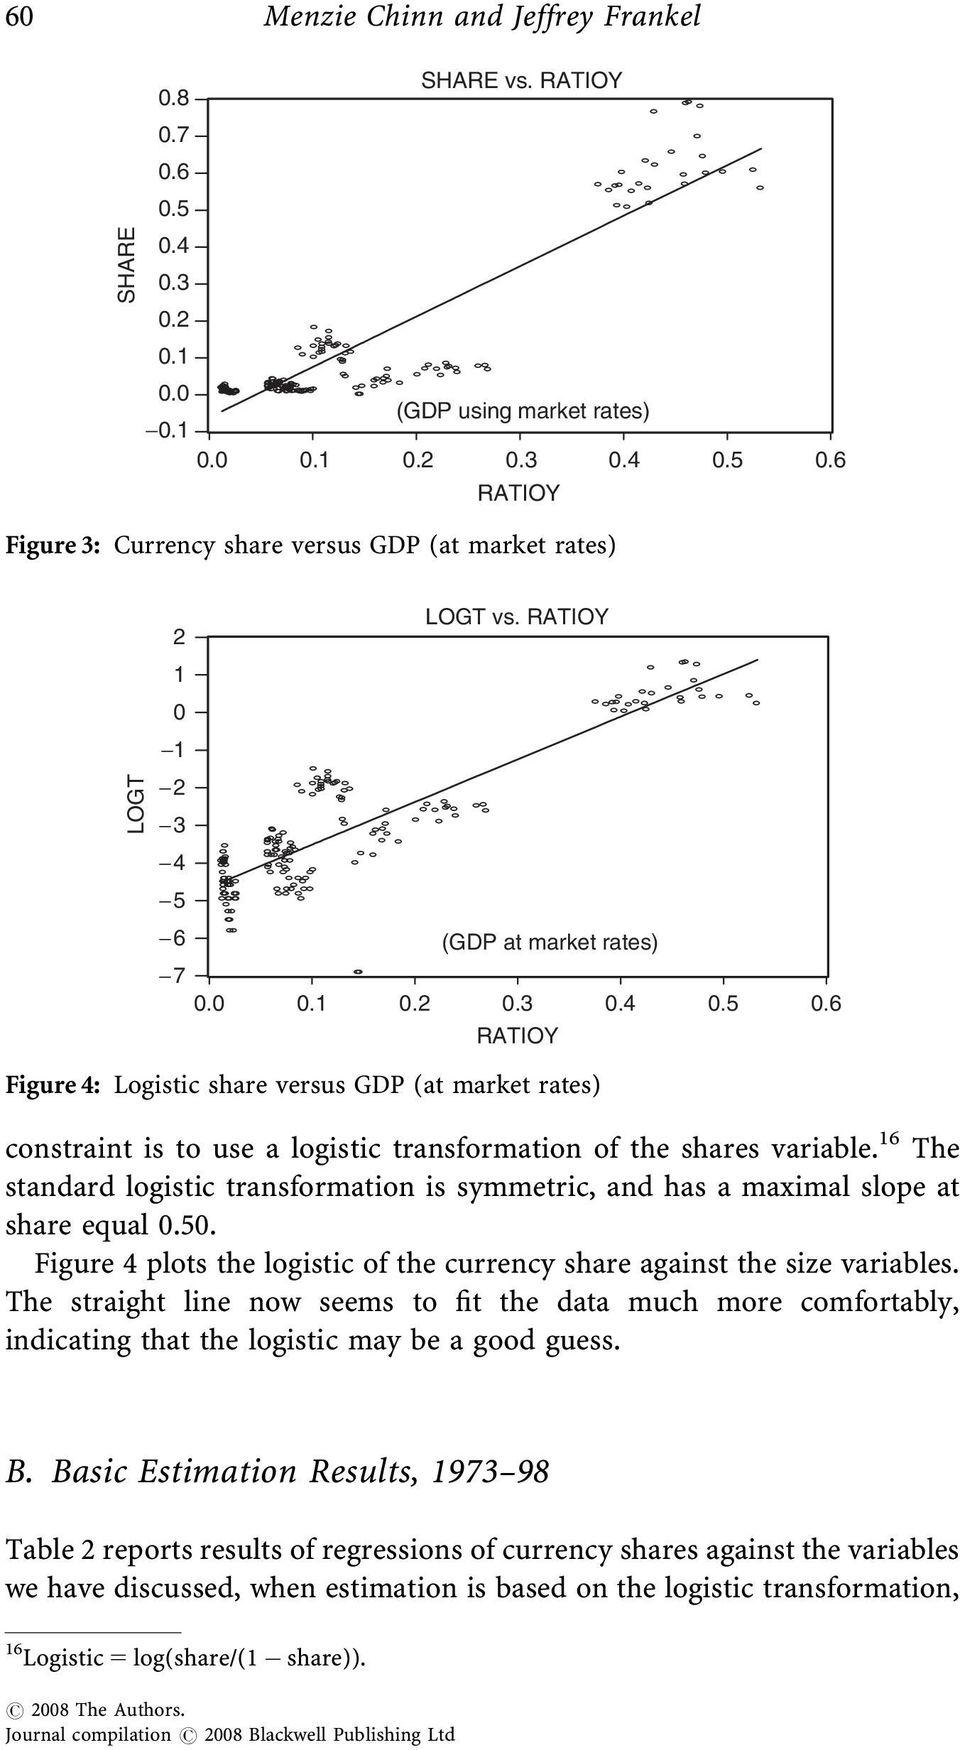 16 The standard logistic transformation is symmetric, and has a maximal slope at share equal 0.50. Figure 4 plots the logistic of the currency share against the size variables.